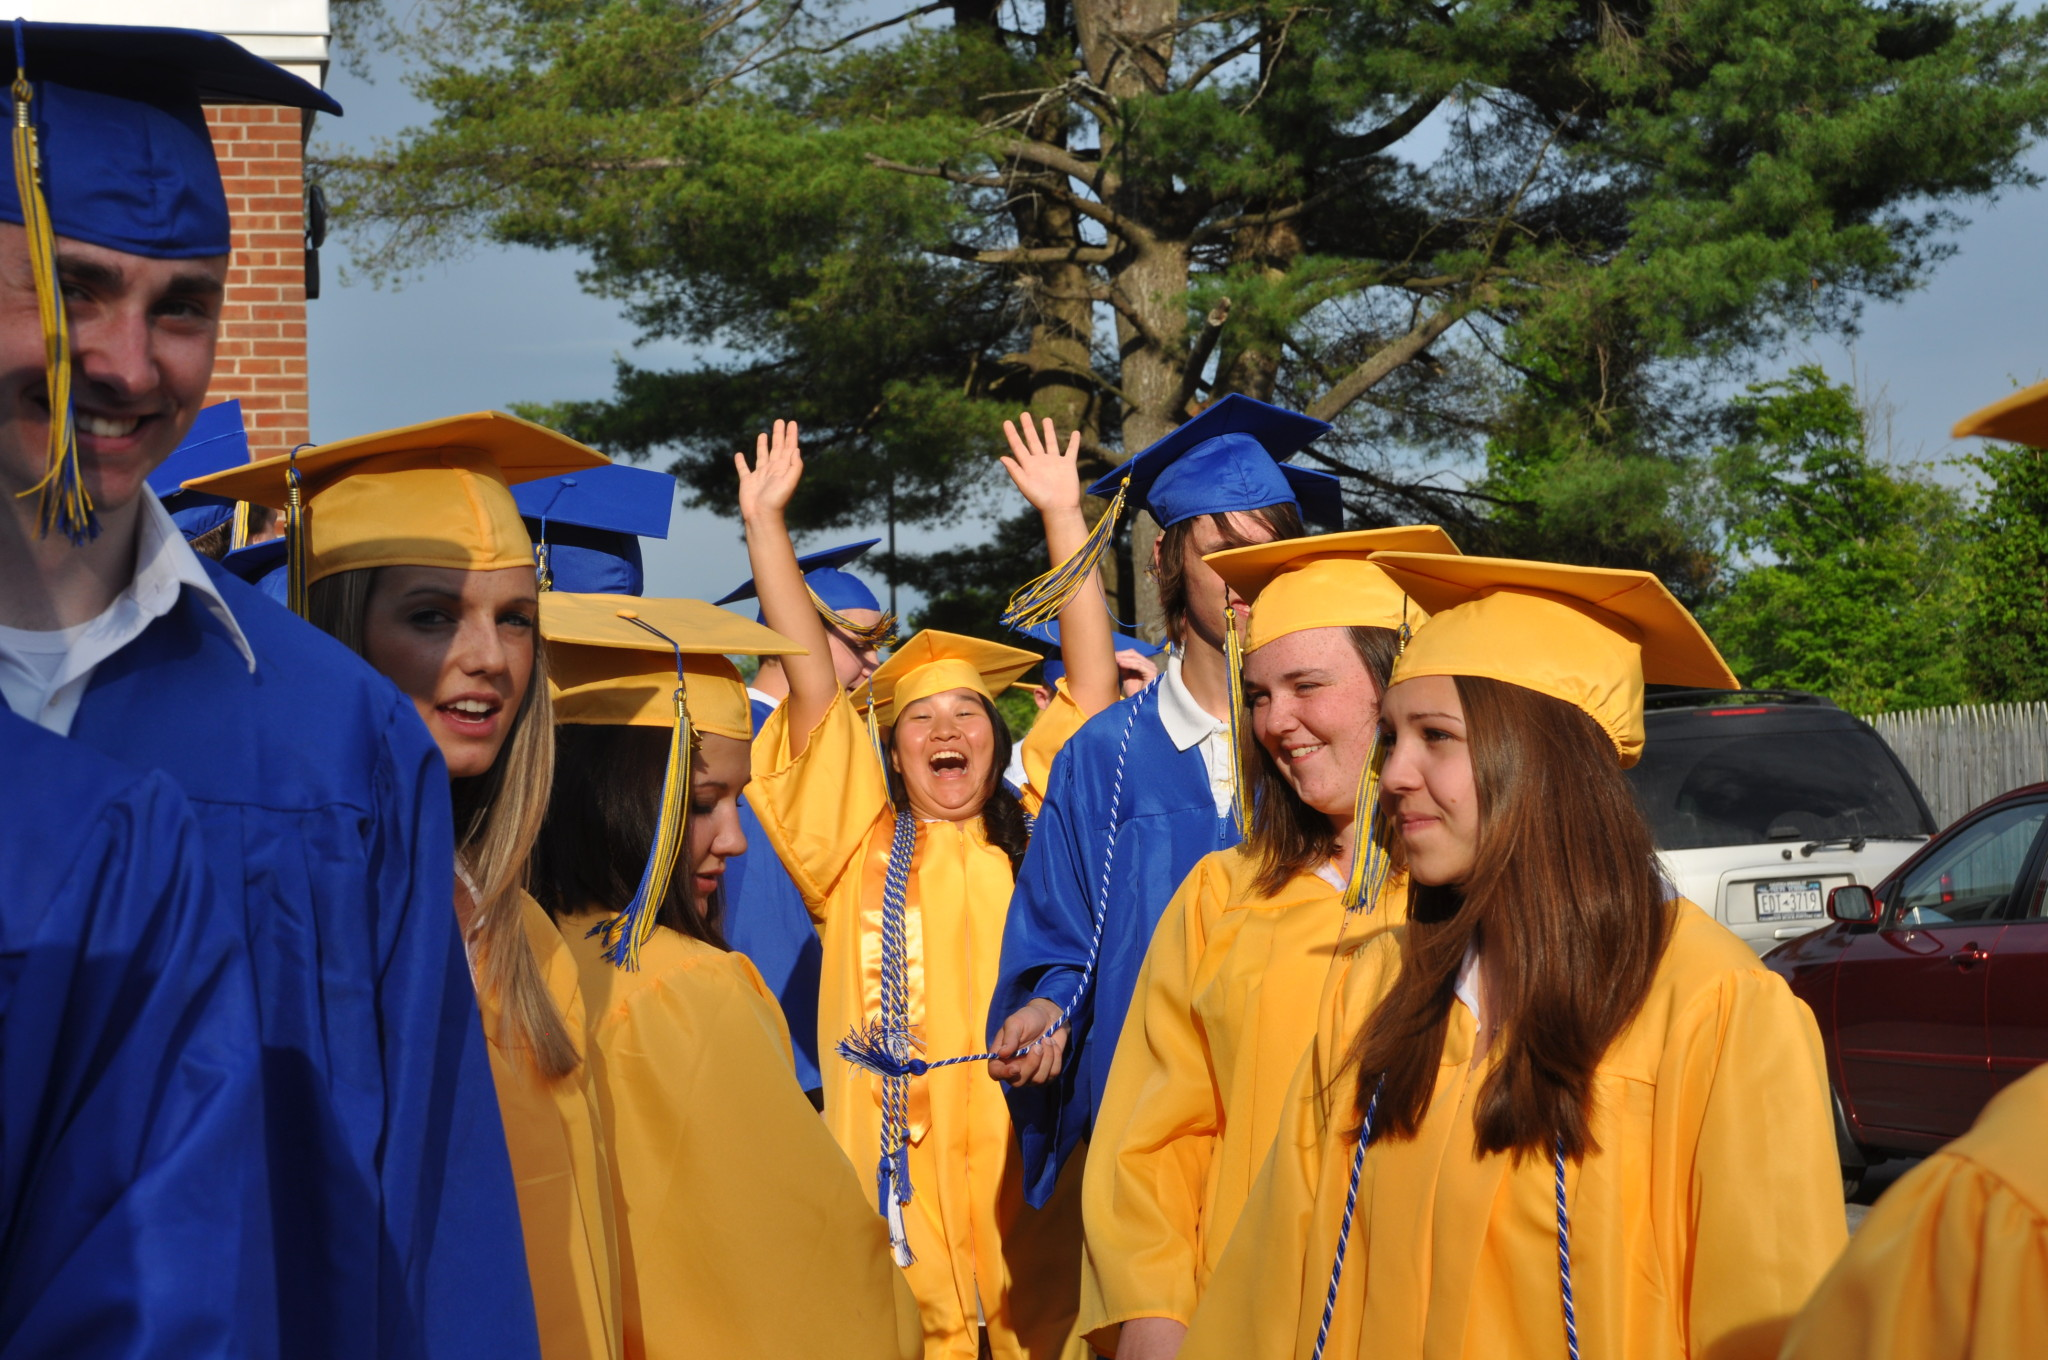 Granville grads struff their stuff